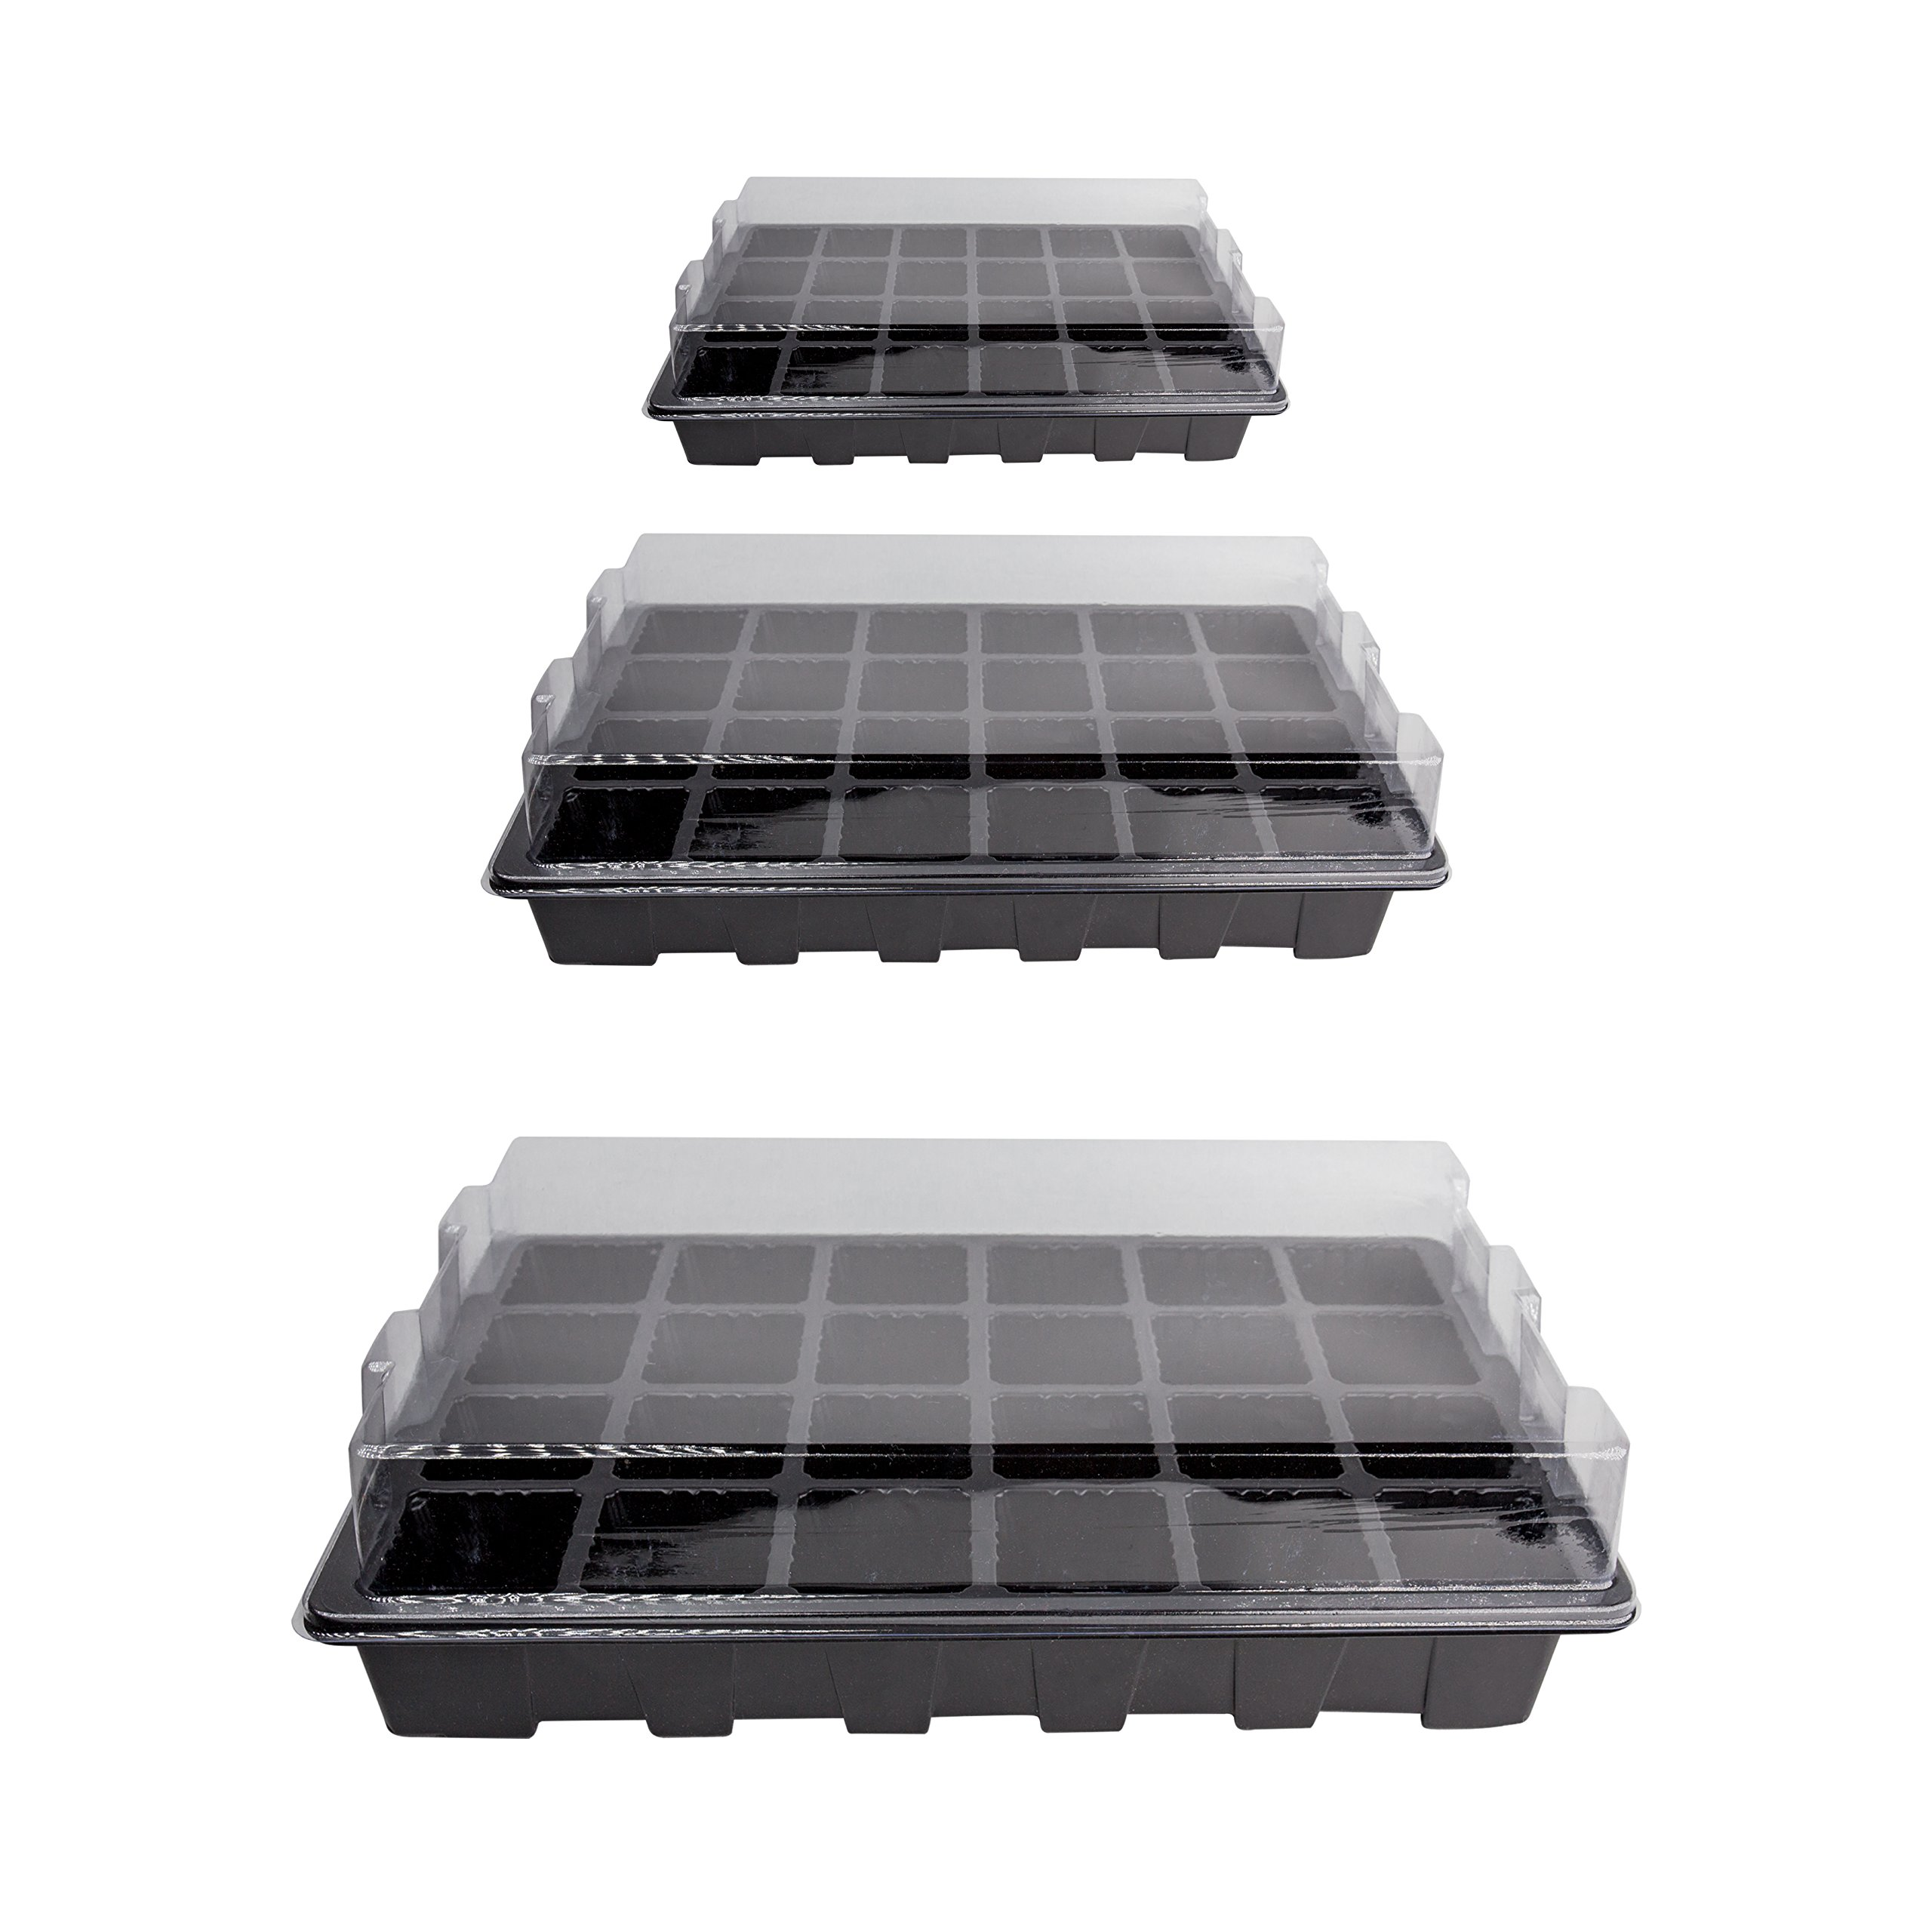 LOVEDAY 10 Pack -240 Cells -24 Grow Trays with Humidity Dome and Cell Insert - Mini Propagator for Seed Starting and Growing Healthy Plants Durable Reusable and Recyclable by LOVEDAY